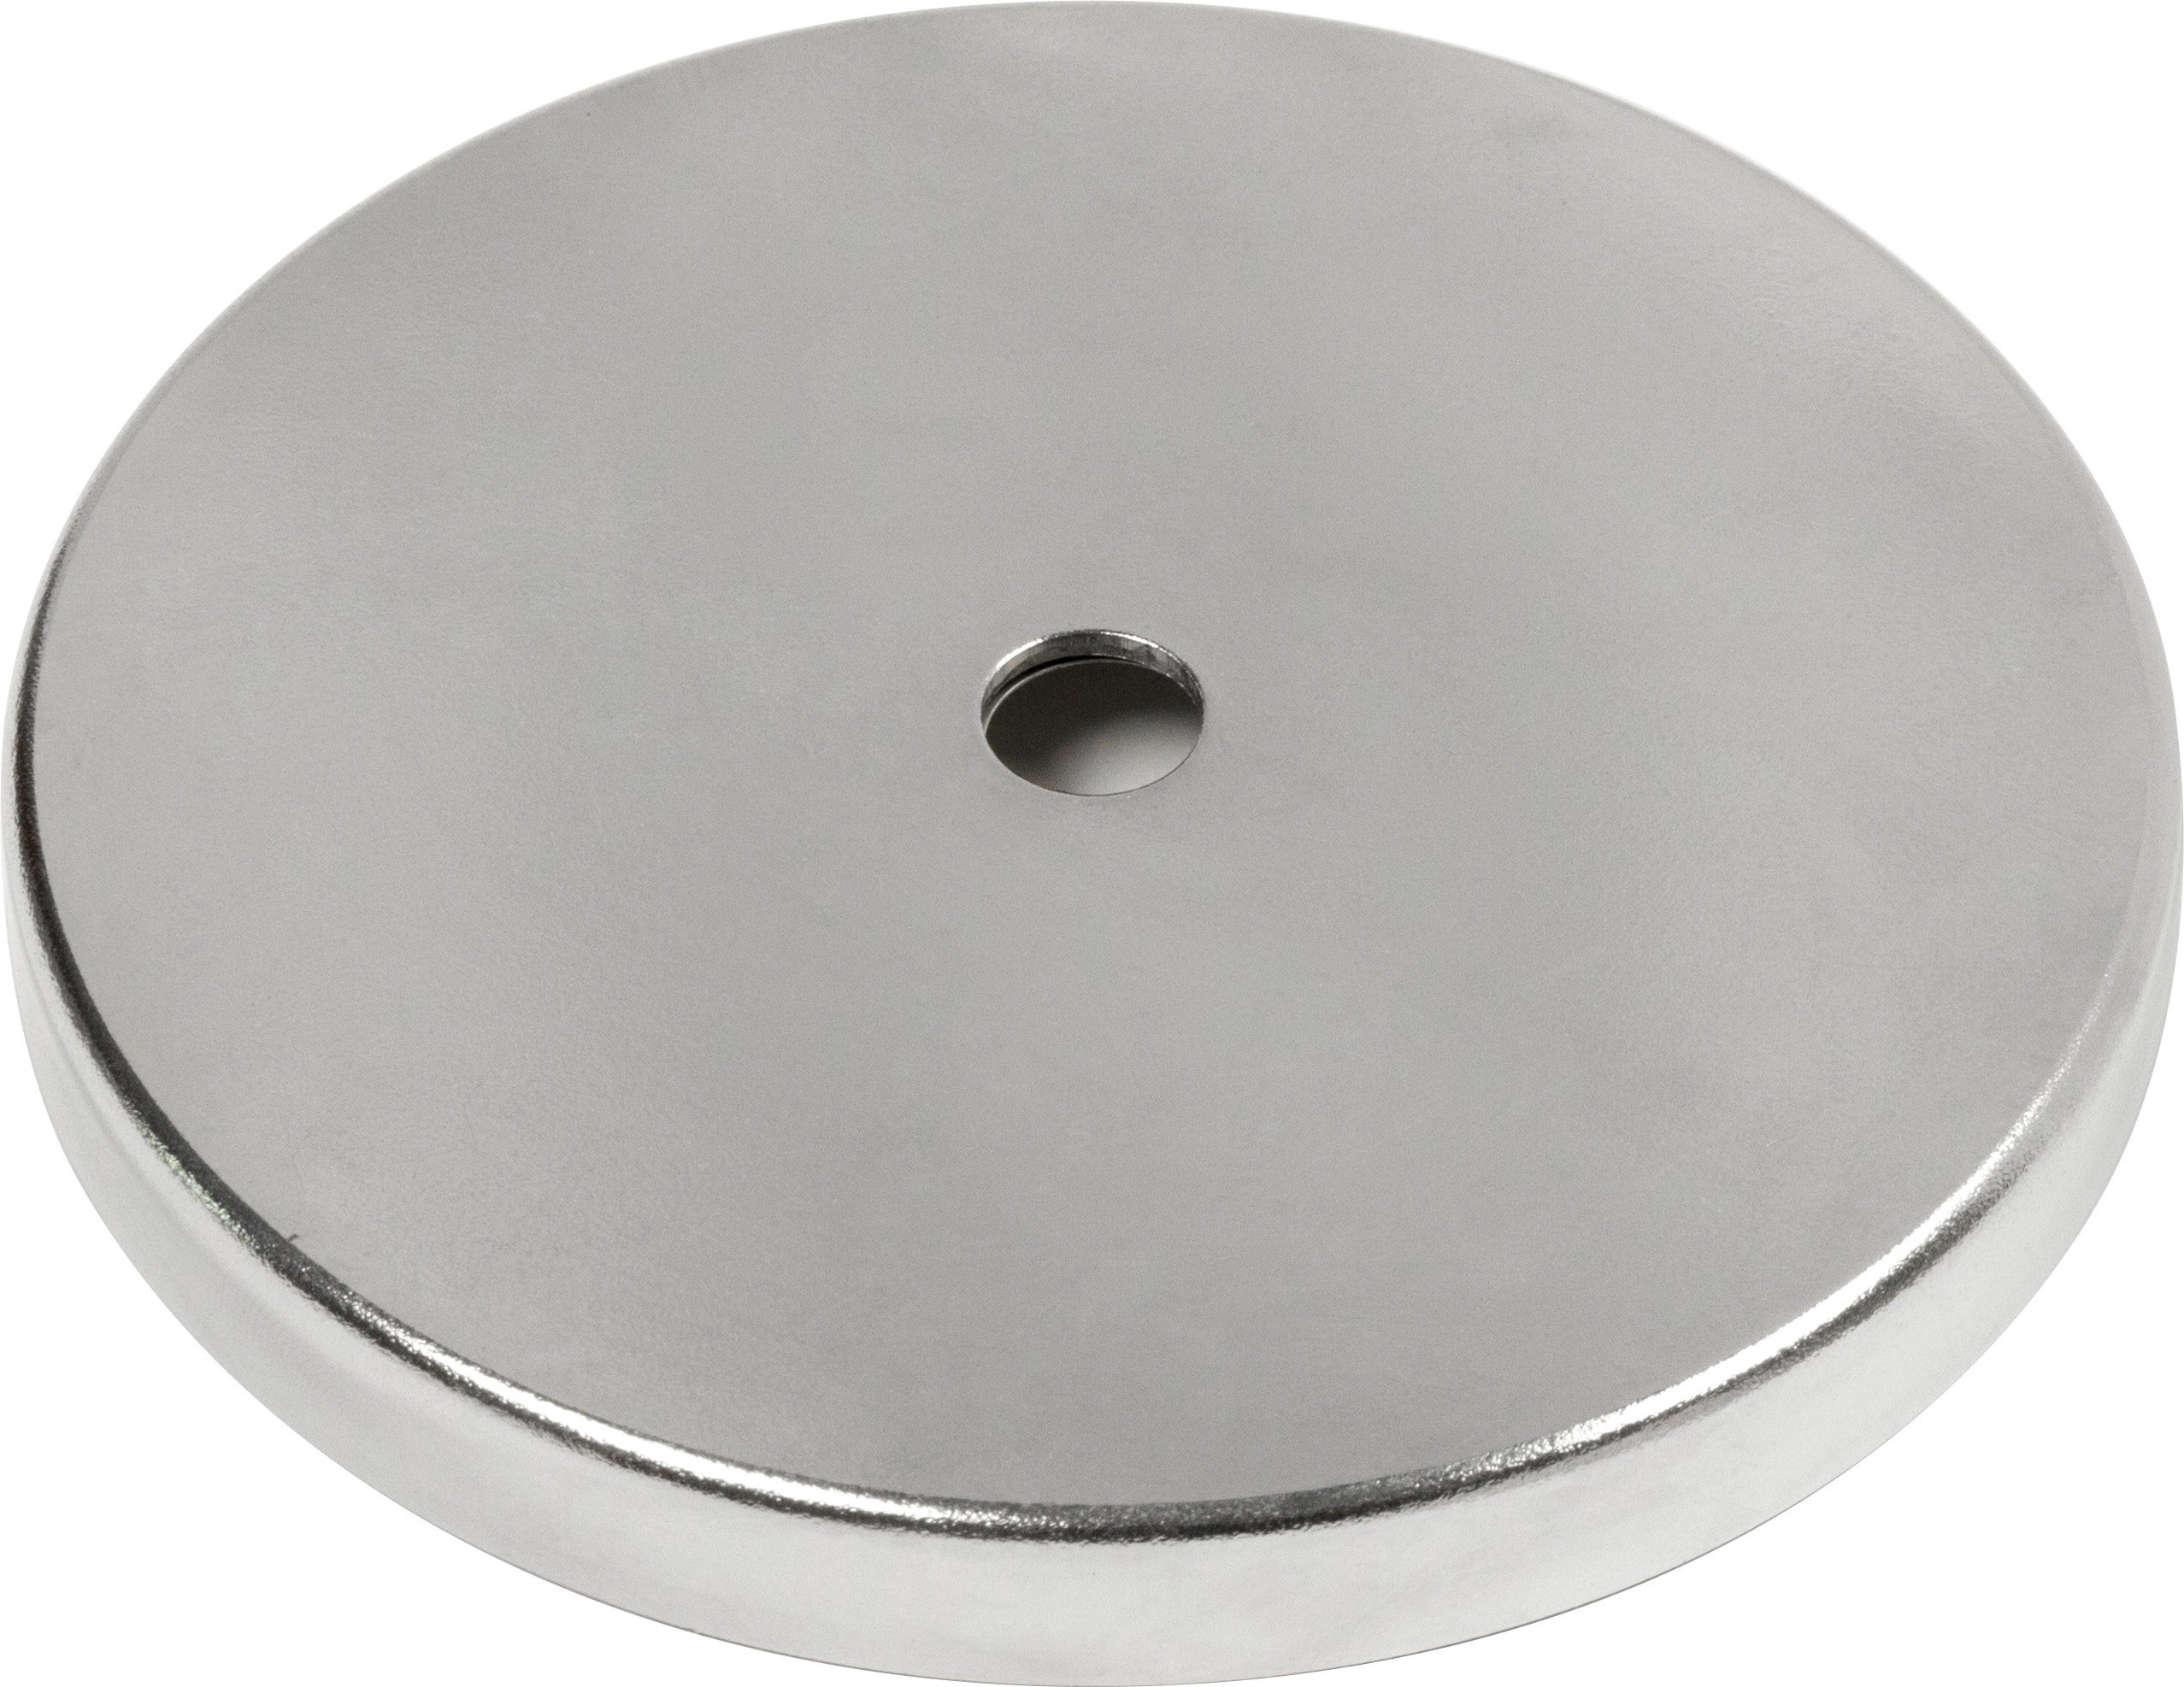 MAG-MATE MX3000 Ceramic Magnet in a Plated Cup, 3.18''/48 lb